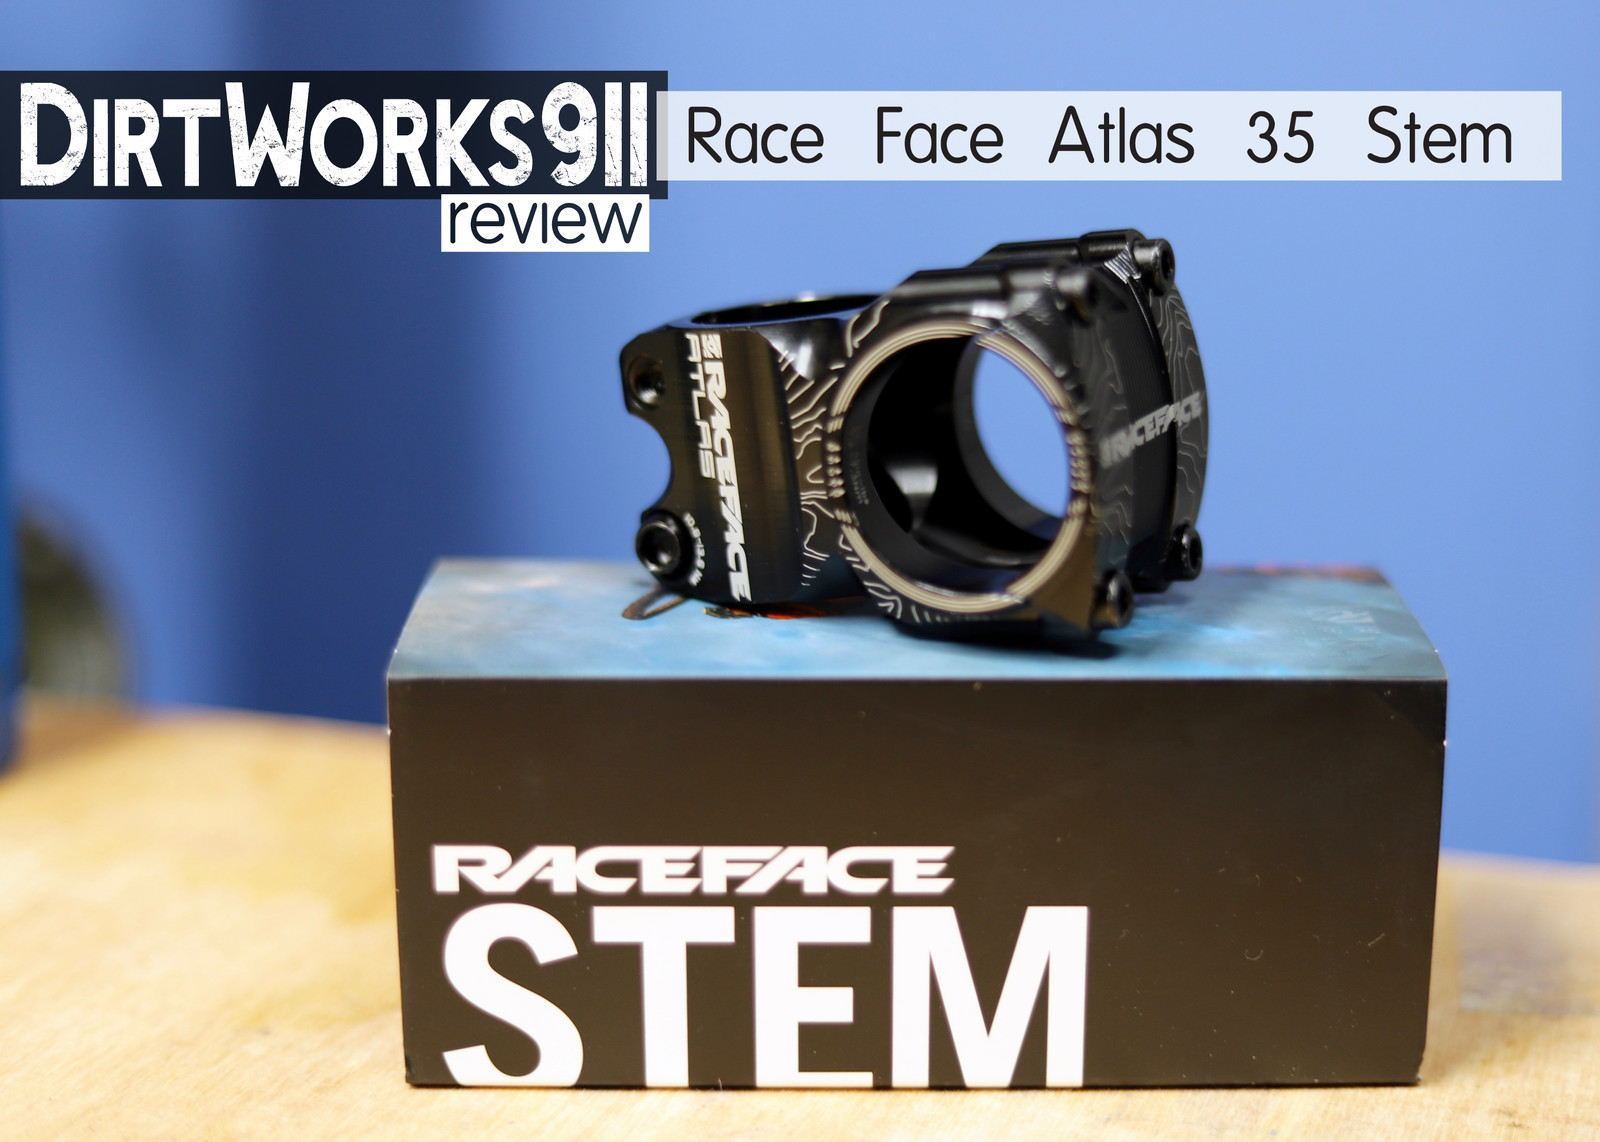 Race Face Atlas 35 Stem